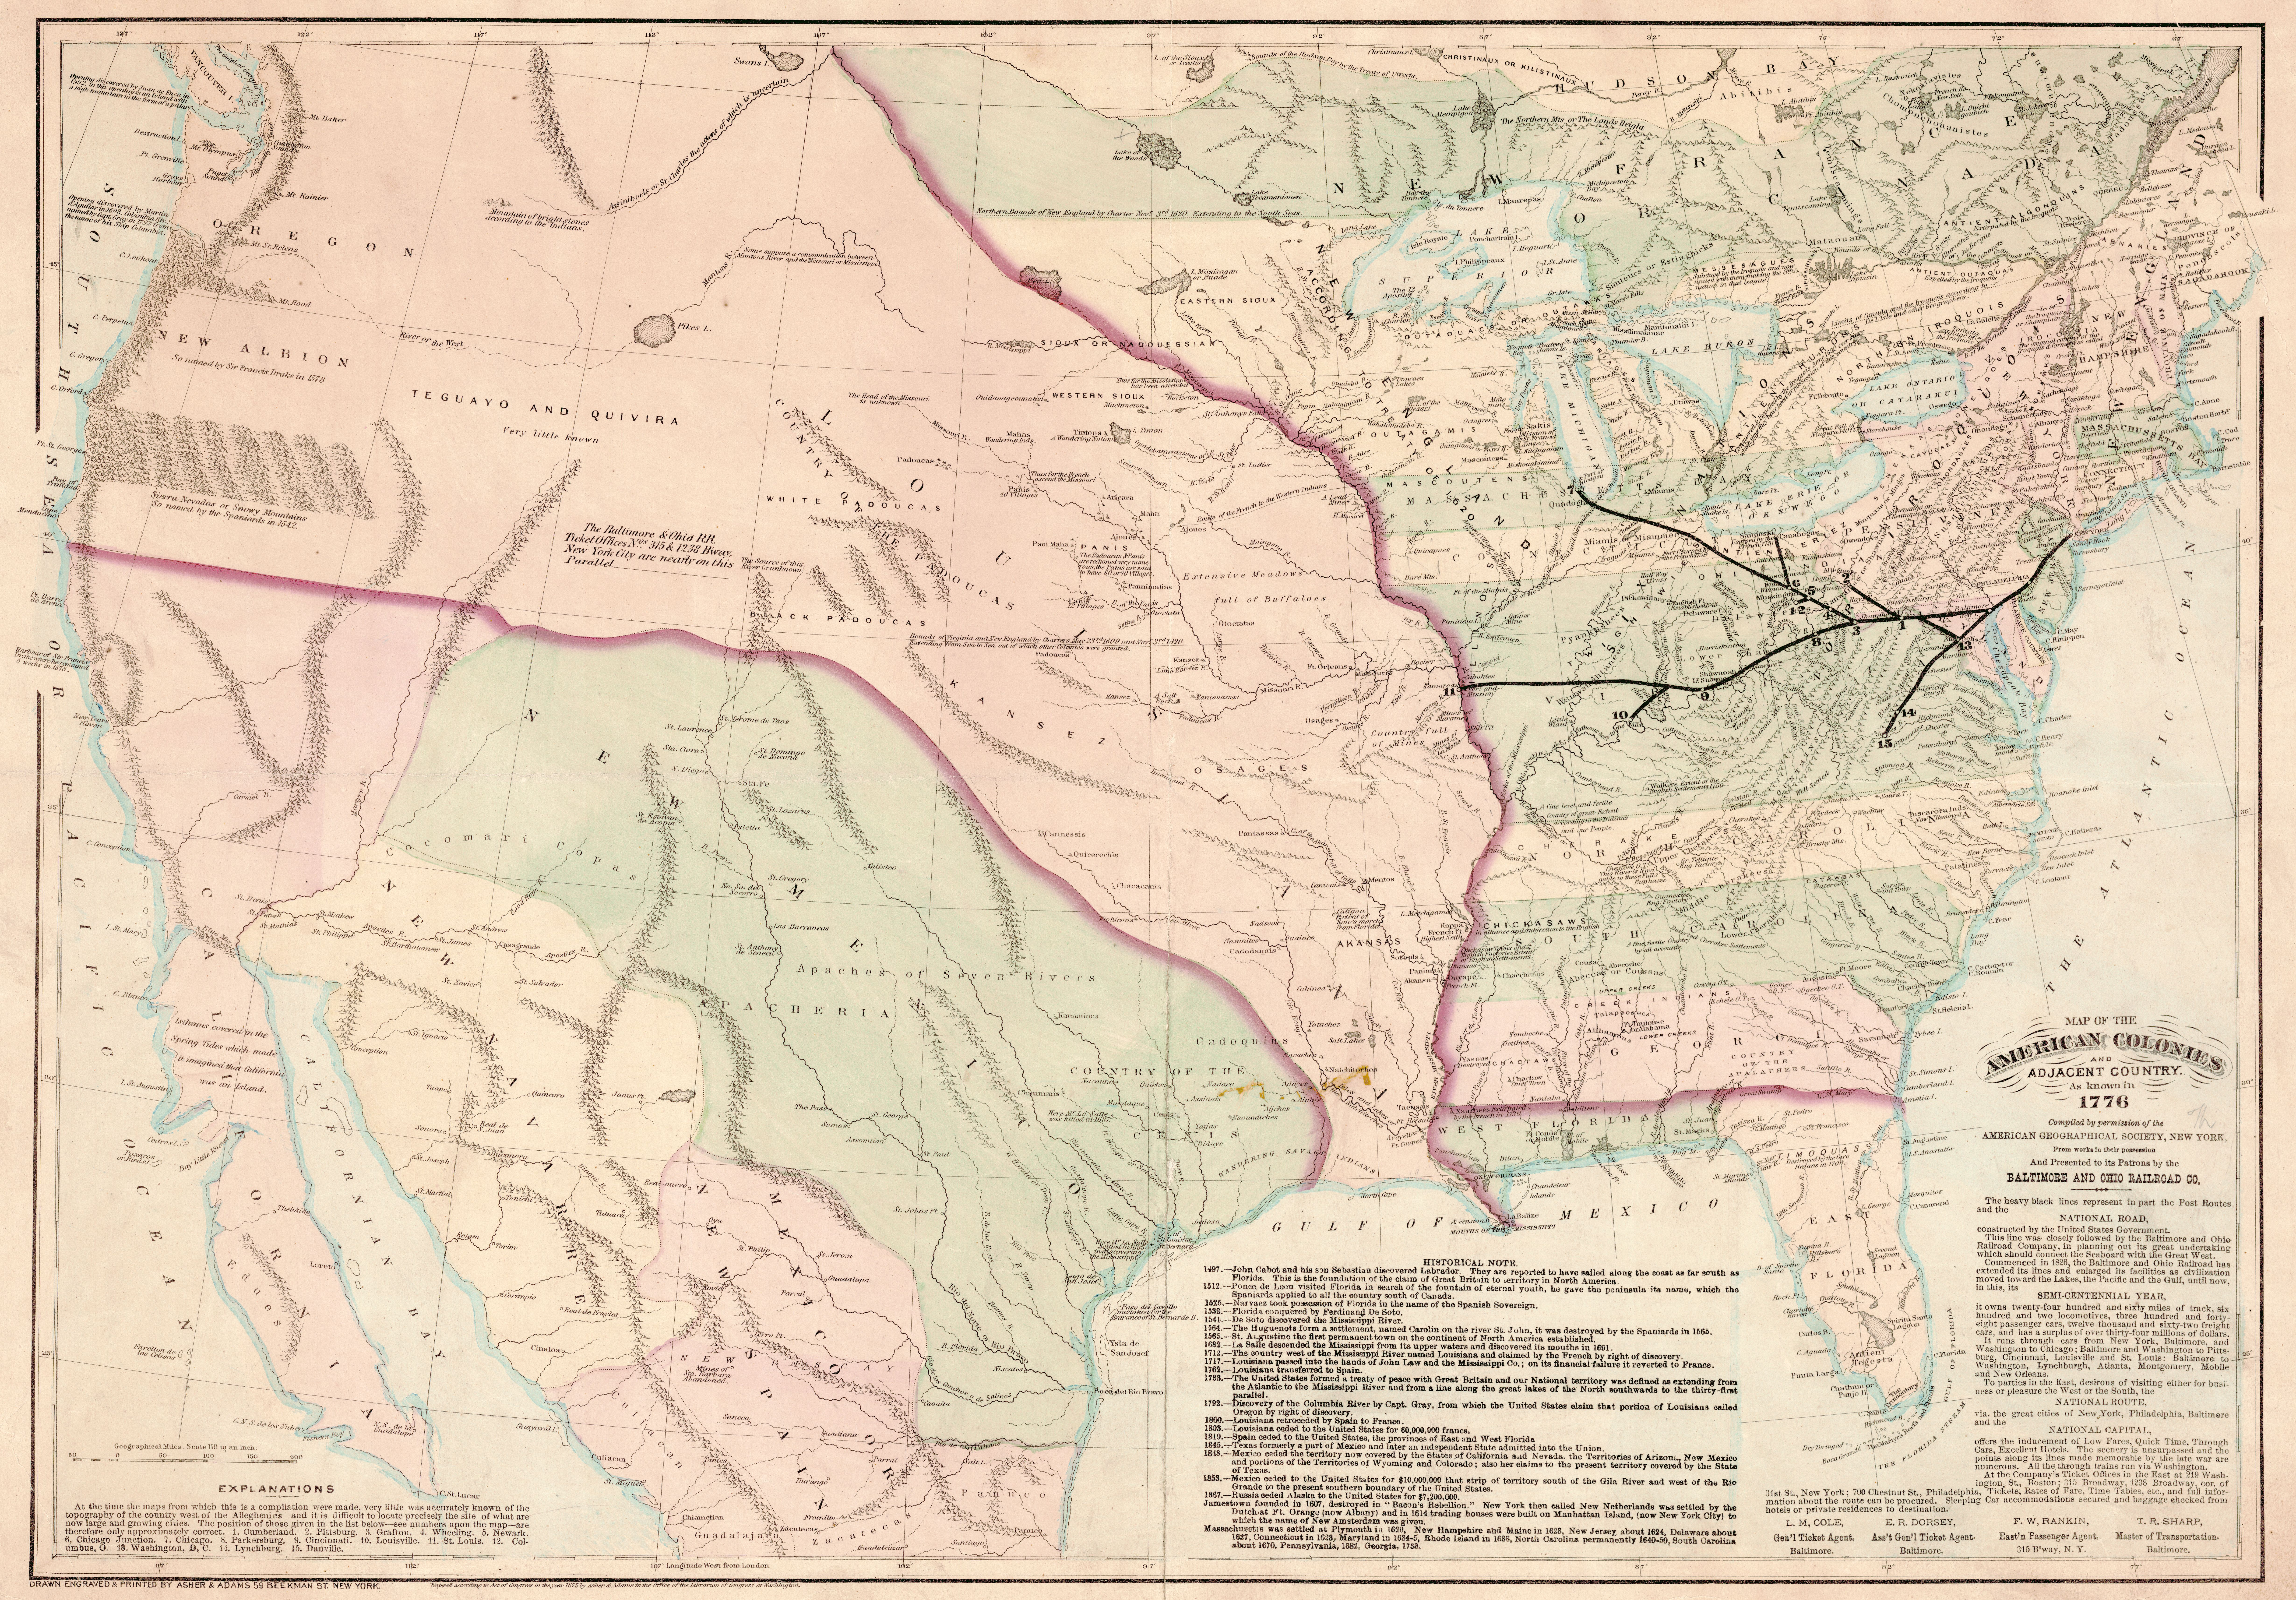 Map of the American colonies and adjacent country as known ...  Map Of Appalachian Mountains on map of black hills, map of st. lawrence river, map of colorado river, map of hudson river, map of rocky mountain, map of alps, map of rio grande, map of united states, map of great plains, map of connecticut, map of minnesota, map of great lakes, map of interior plains, map of cascade mountains, map of boston, map of maryland, map of grand canyon, map of tetons, map of shenandoah valley, map of canadian shield,